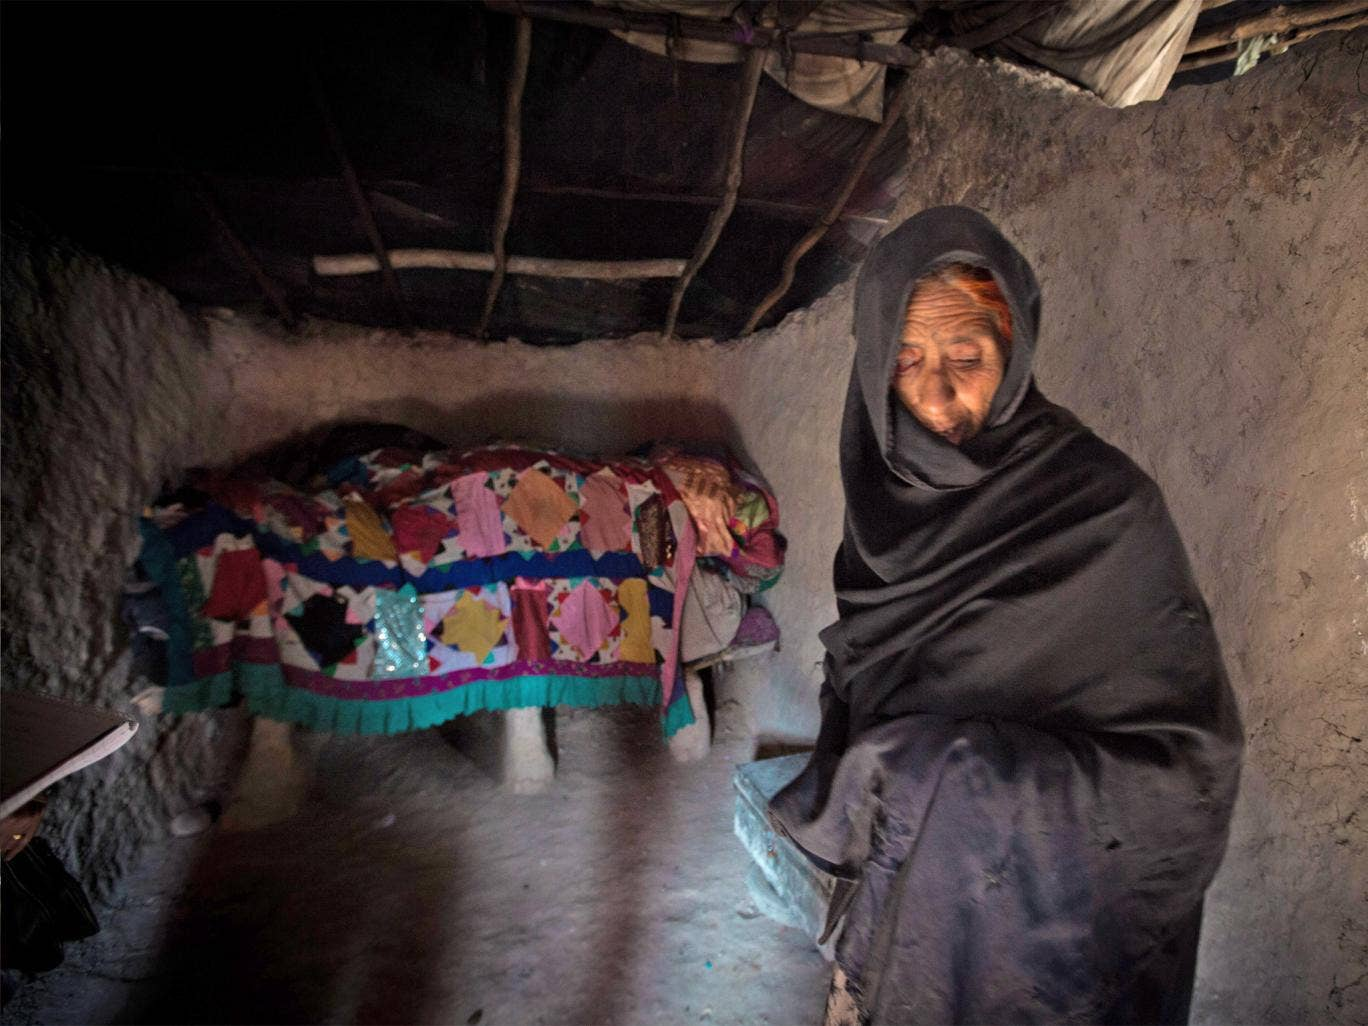 Niaz Bibi shelters in her mud-walled home in Kabul's Nasaji Bagramy camp for internal refugees. Her family survives on charity handouts and the proceeds of her grandchildren's begging